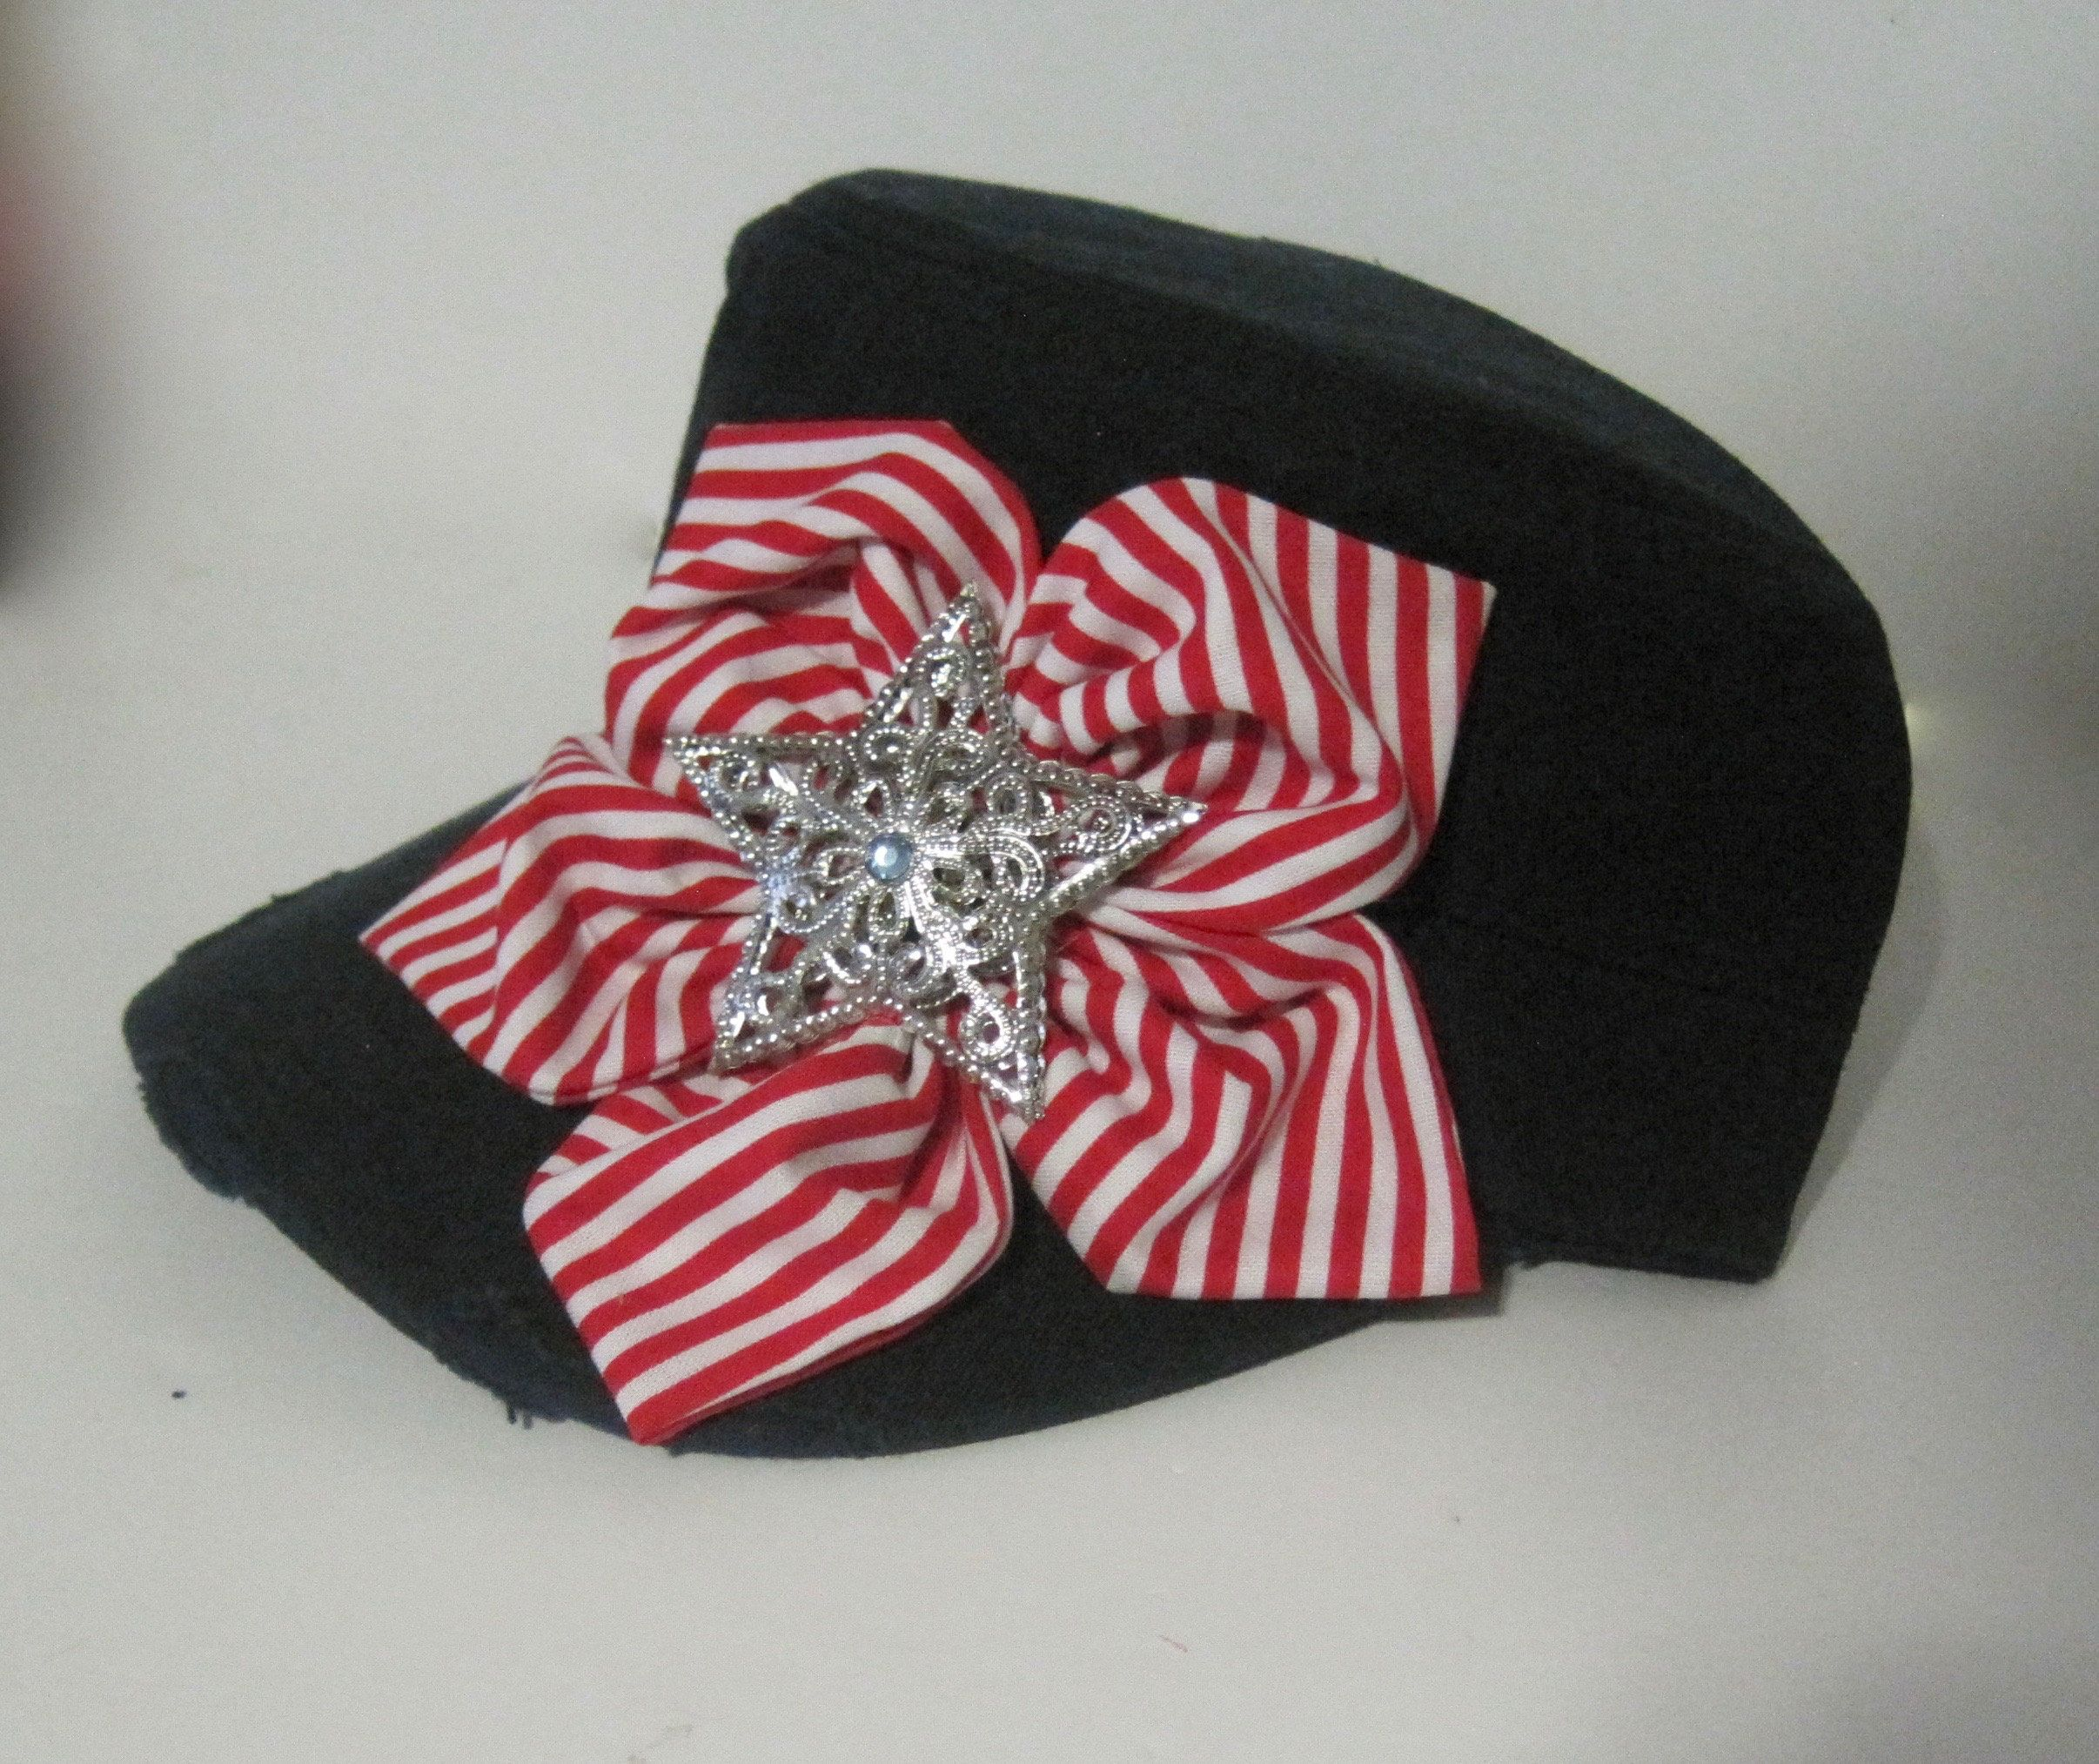 Women s Navy Distressed Cadet Military Hat with Red and White Petal Flower  and Star Accent Patriotic Hat Caps Fourth of July Hat Accessories by ... 7304d046ee